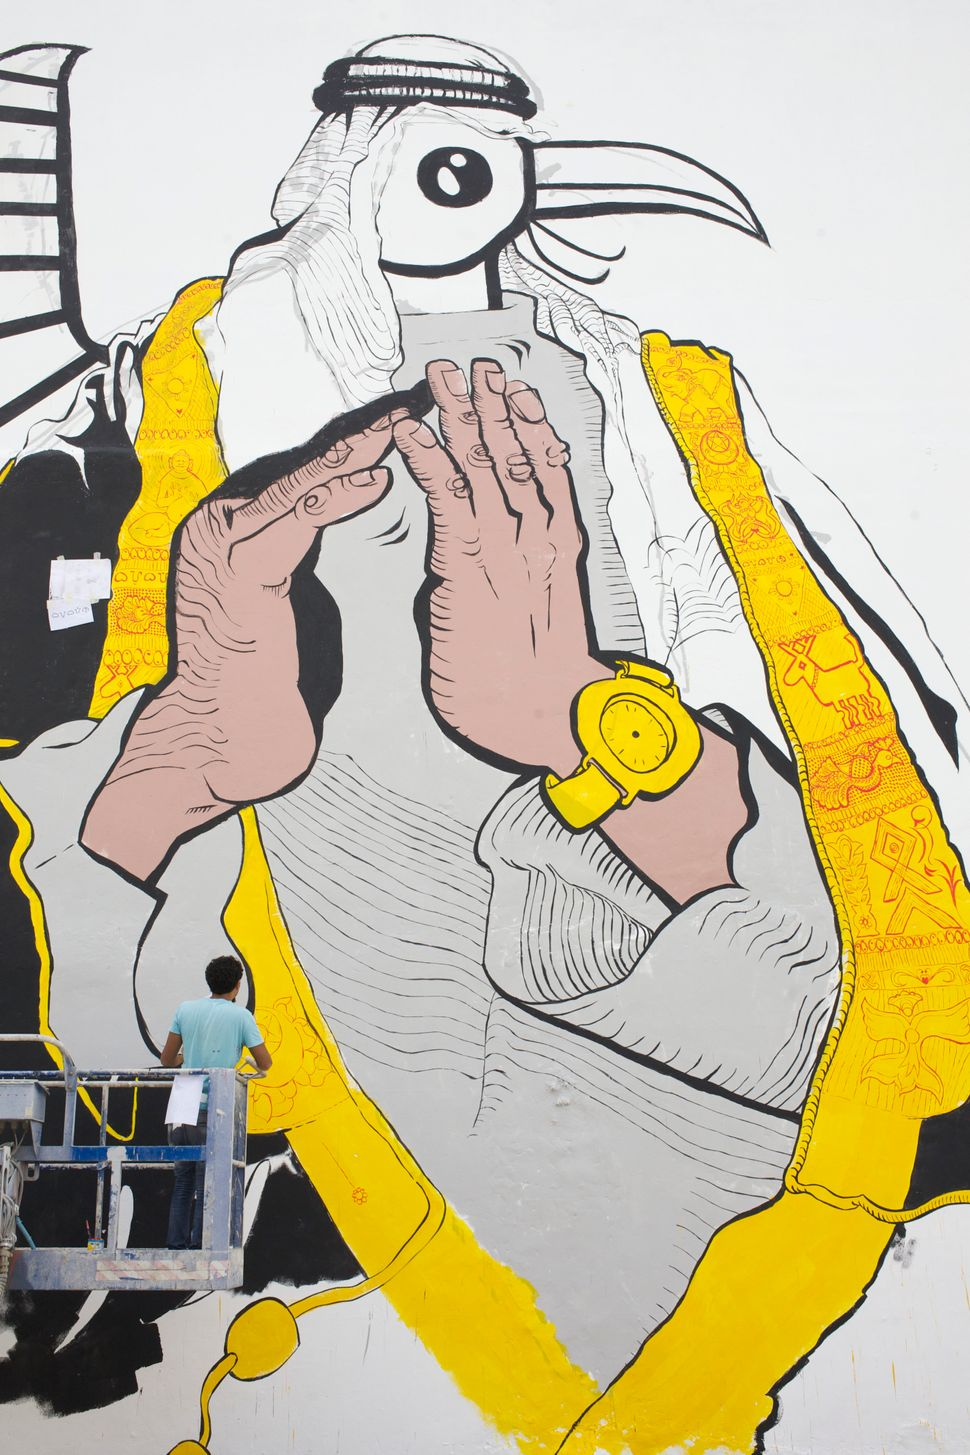 Ganzeer is known for his murals that blend current cultural images with traditional symbols, such as the one p